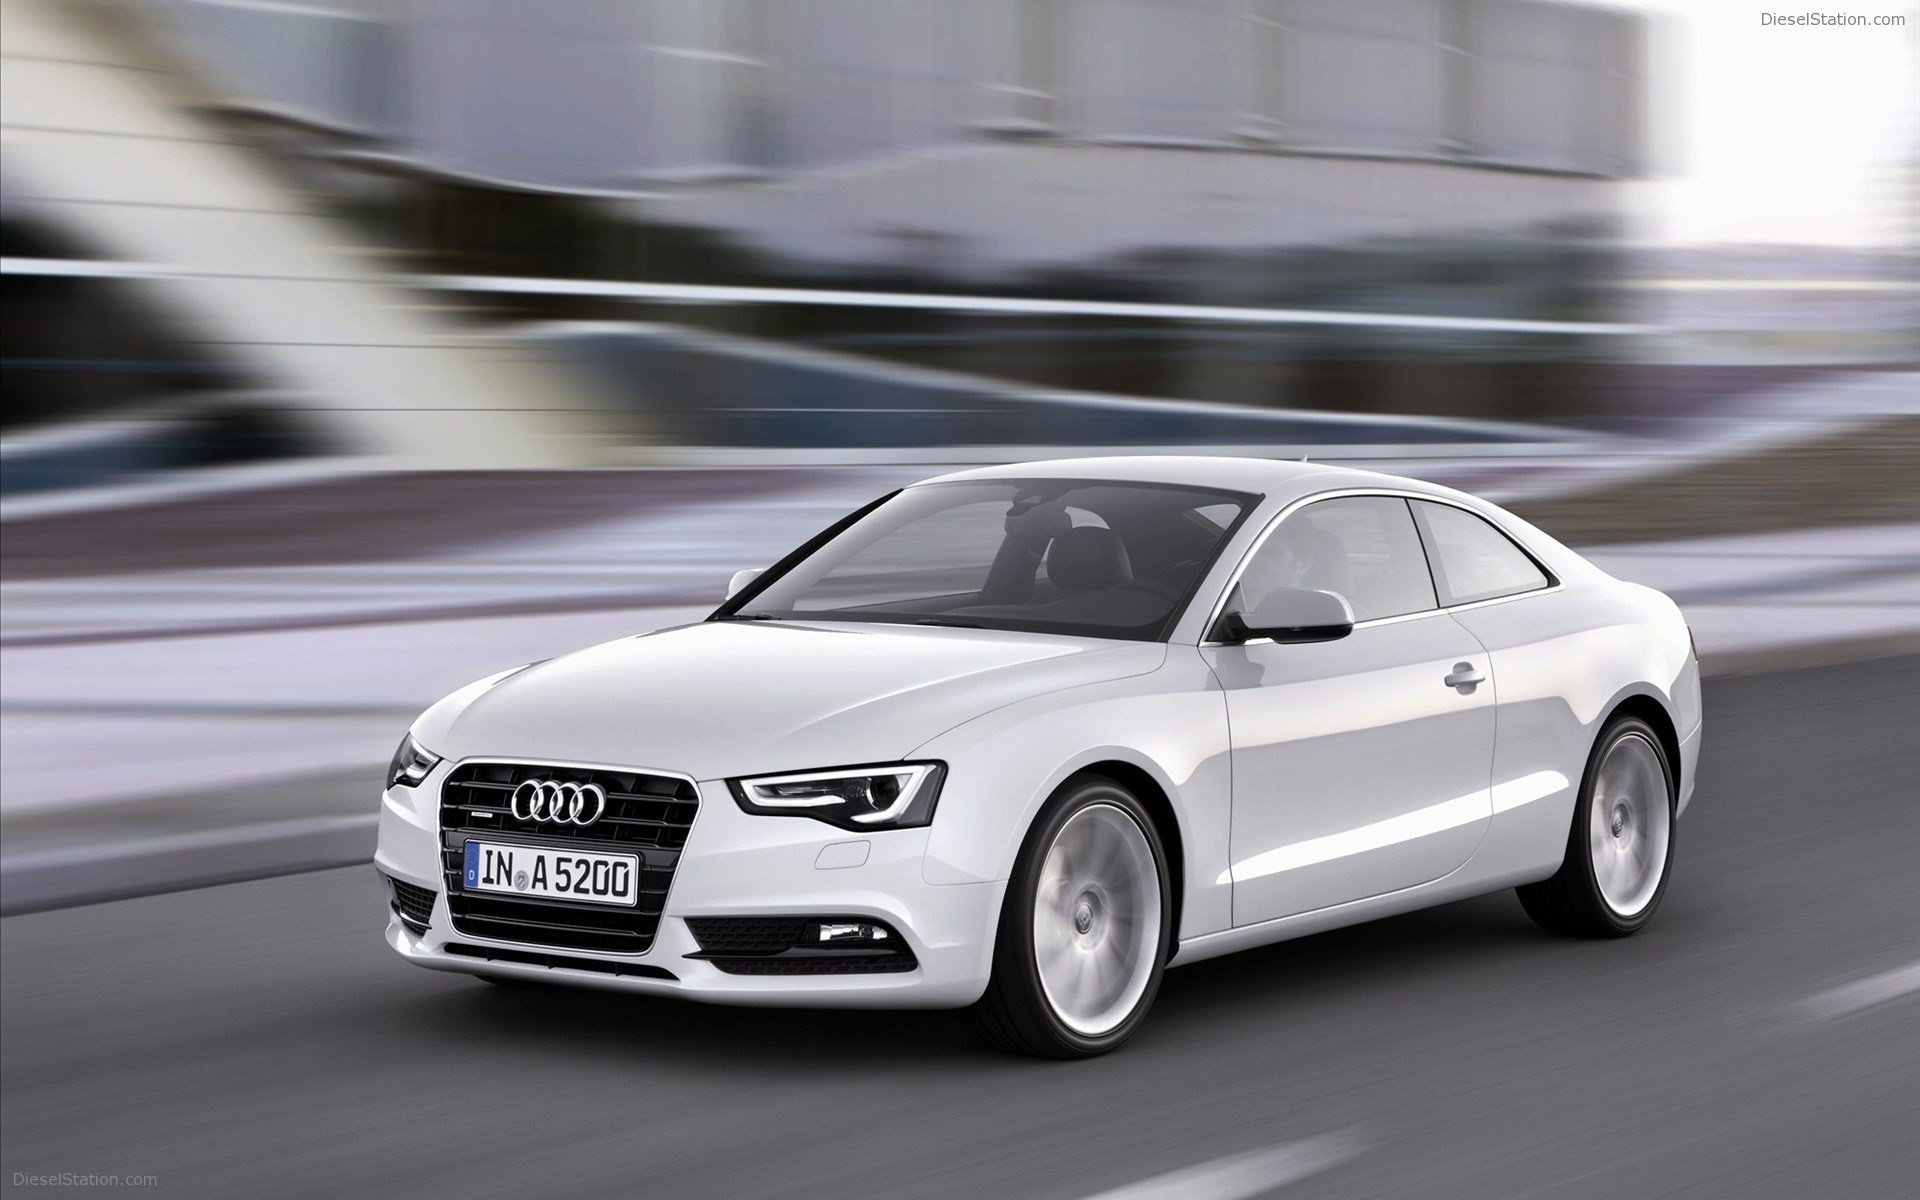 Latest Audi A5 2013 Widescreen Exotic Car Wallpaper 03 Of 32 Free Download